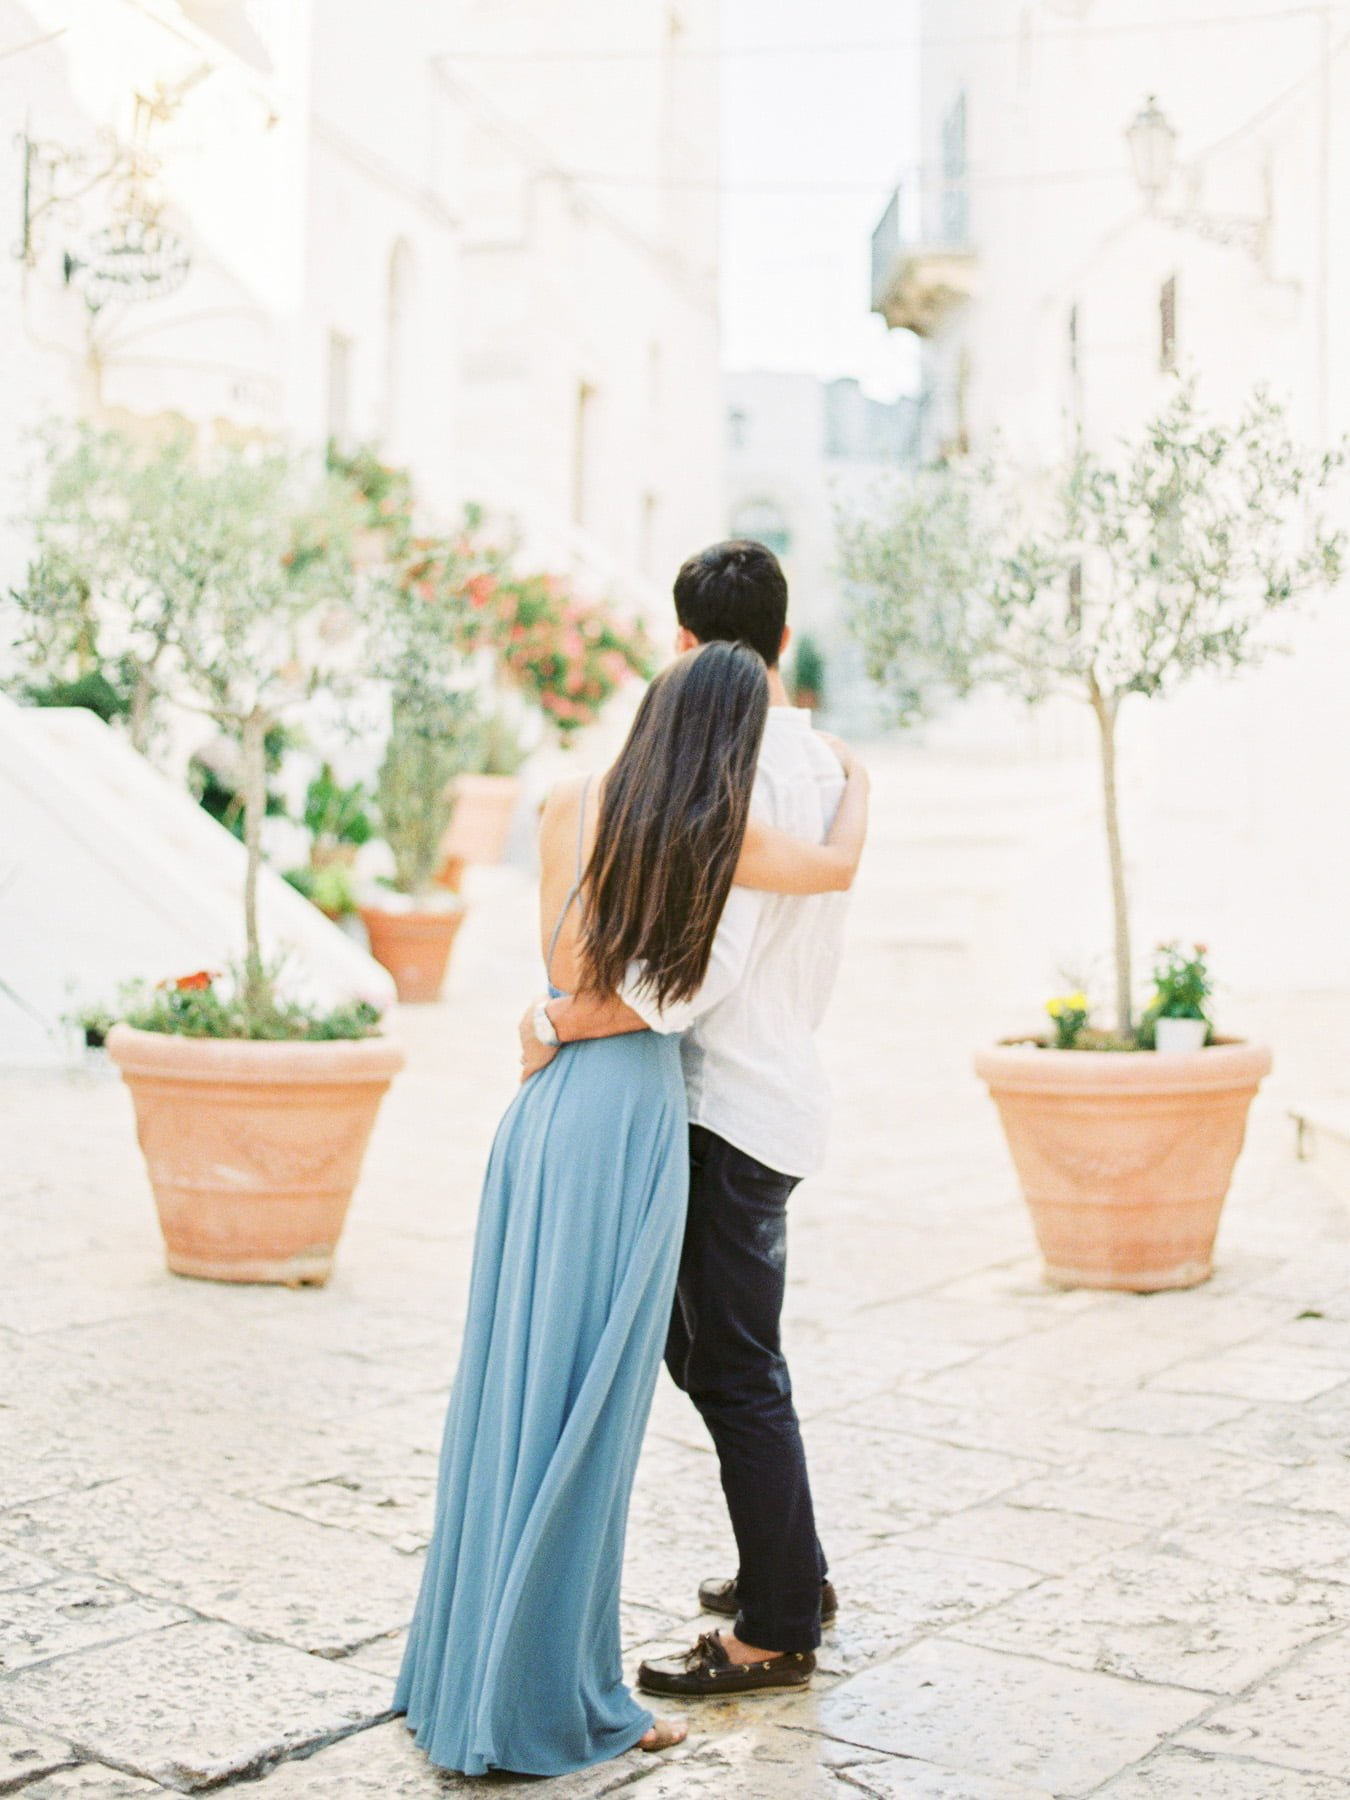 Sergio-Sorrentino-Fotografie_Italy-Wedding-Photographer_Honeymoon-in-Ostuni-Apulia_033